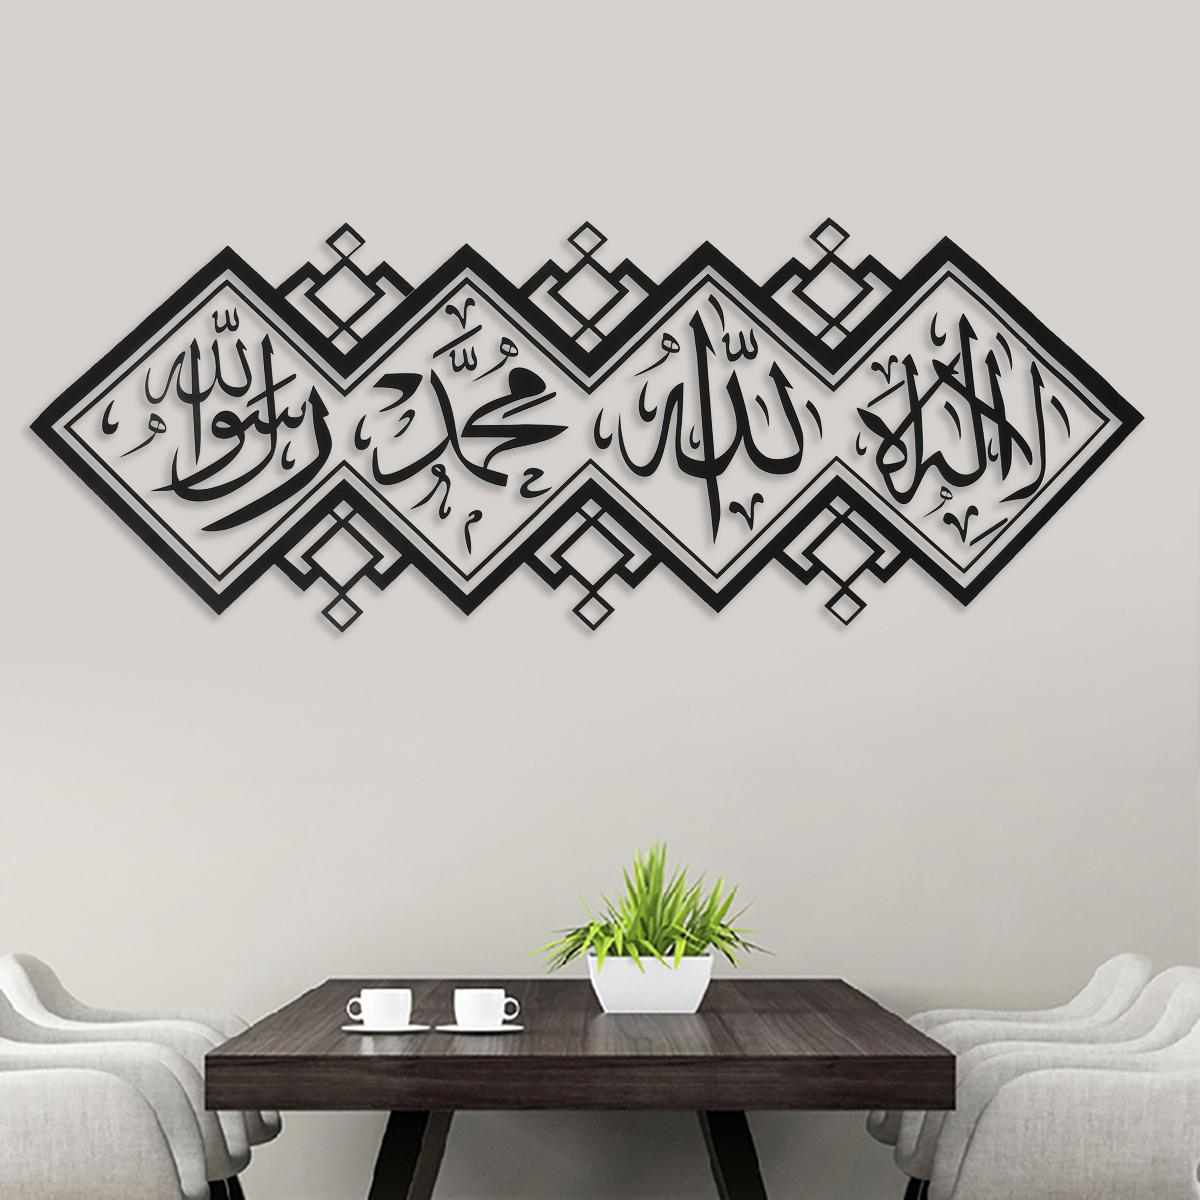 【Freeshipping+Superdeal+Limitedoffer】120*44Cm Wall Stickers Calligraphy Wall Art Decal Kalimah Within Casual Country Eat Here Retro Wall Decor (View 30 of 30)